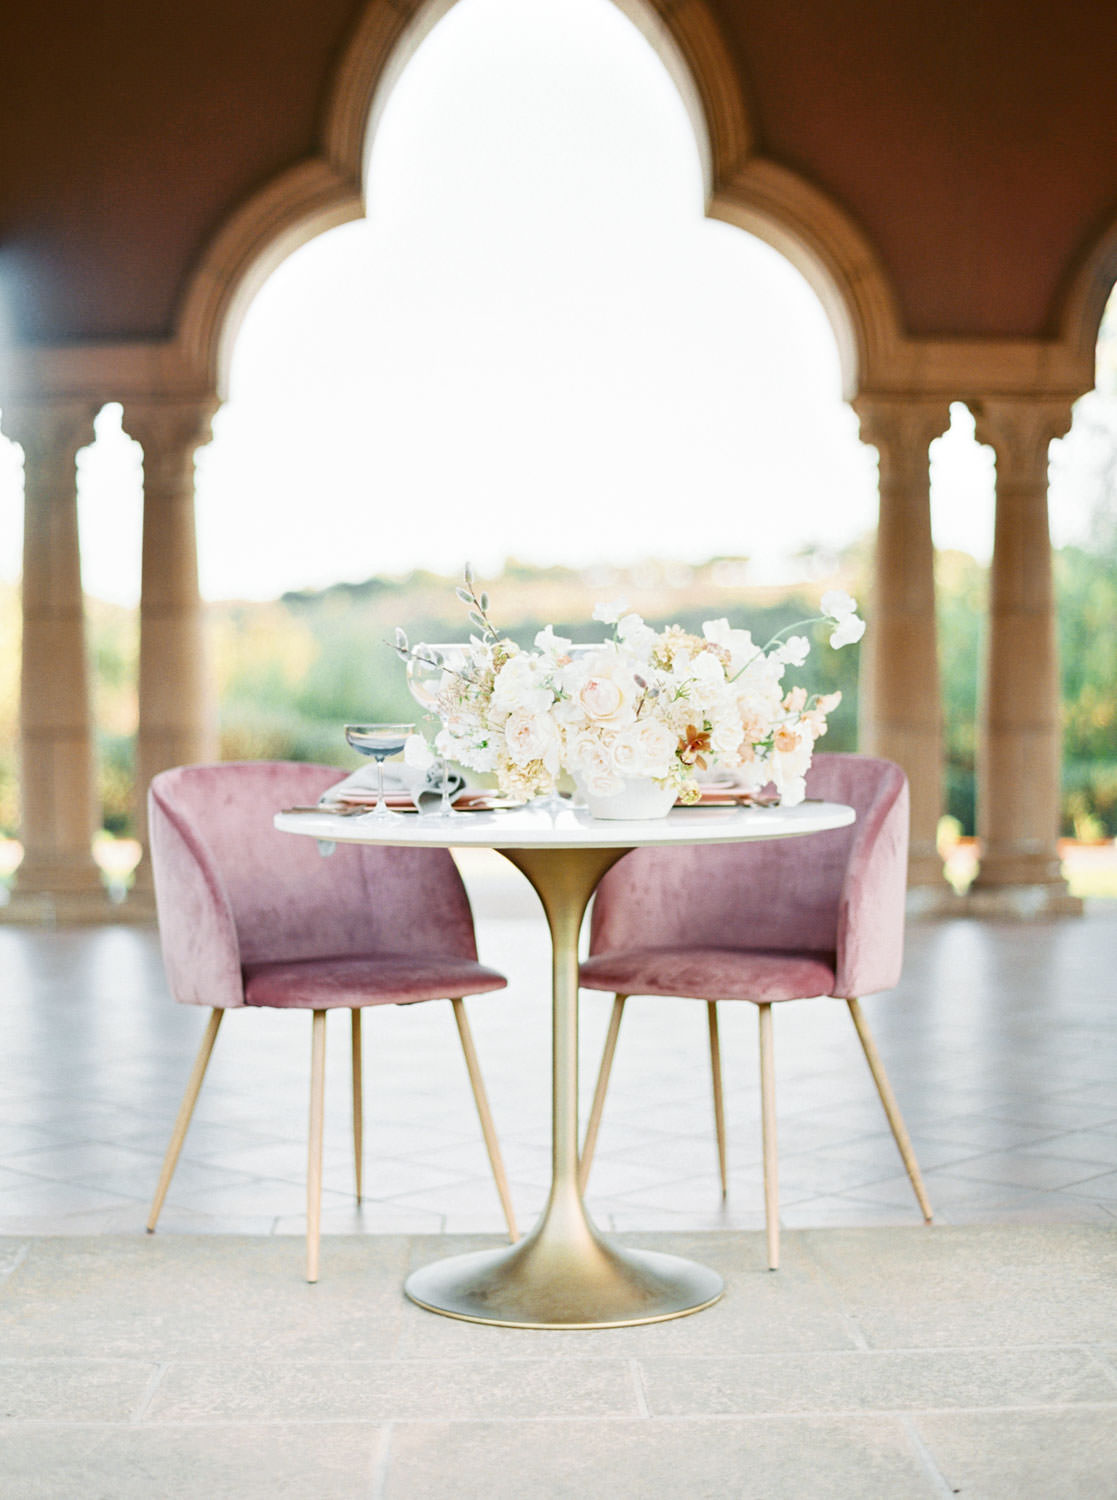 White sweetheart table with mauve pink velvet chairs with white centerpiece under Aria lawn pavilion at the Grand Del Mar, Cavin Elizabeth Photography